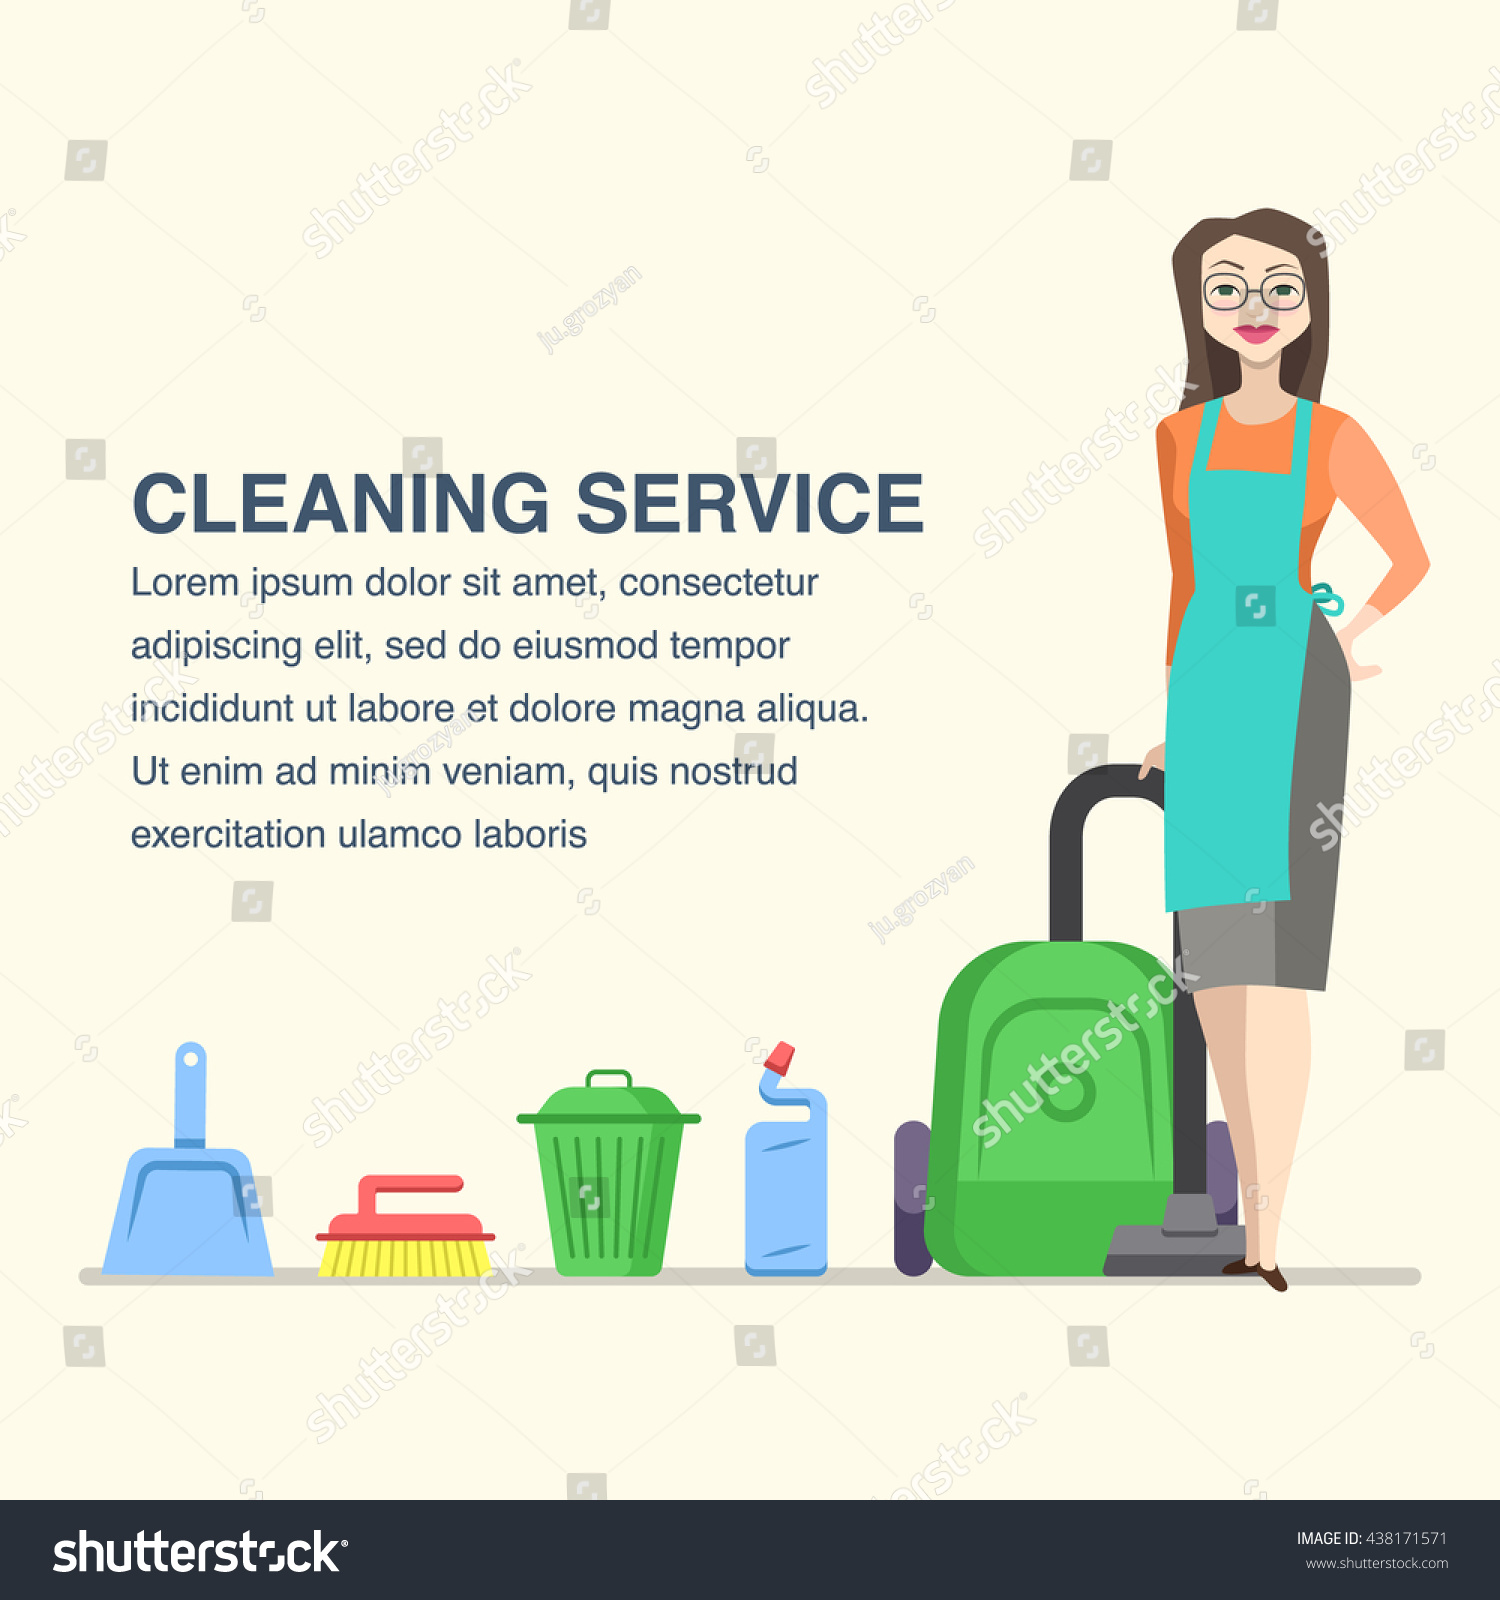 cleaning service banner advertisement cartoon w stock vector cleaning service banner for advertisement cartoon w character and house cleaning tools